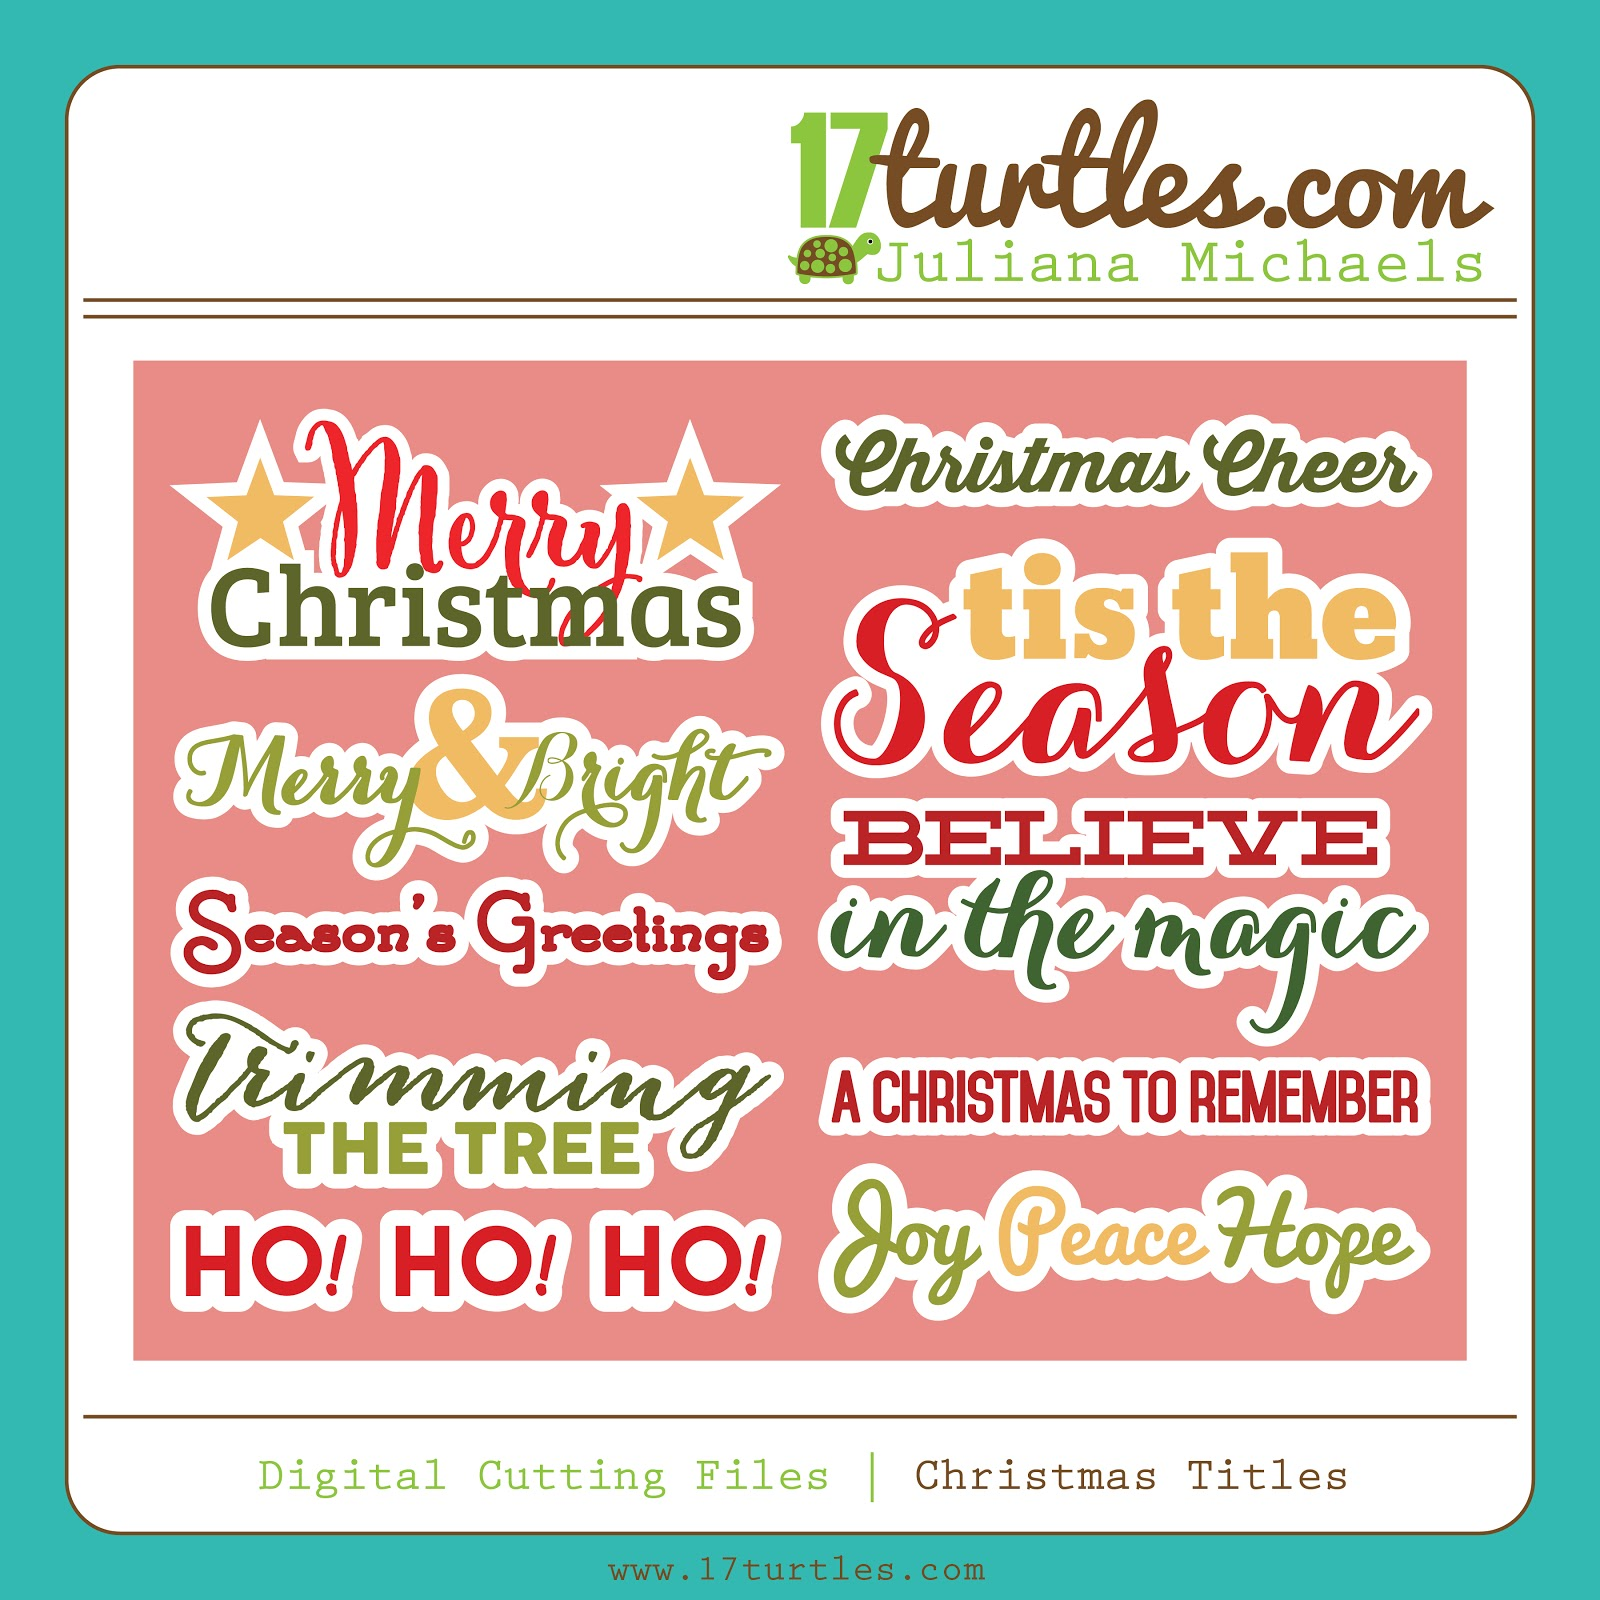 17turtles Digital Cut Files Christmas Titles